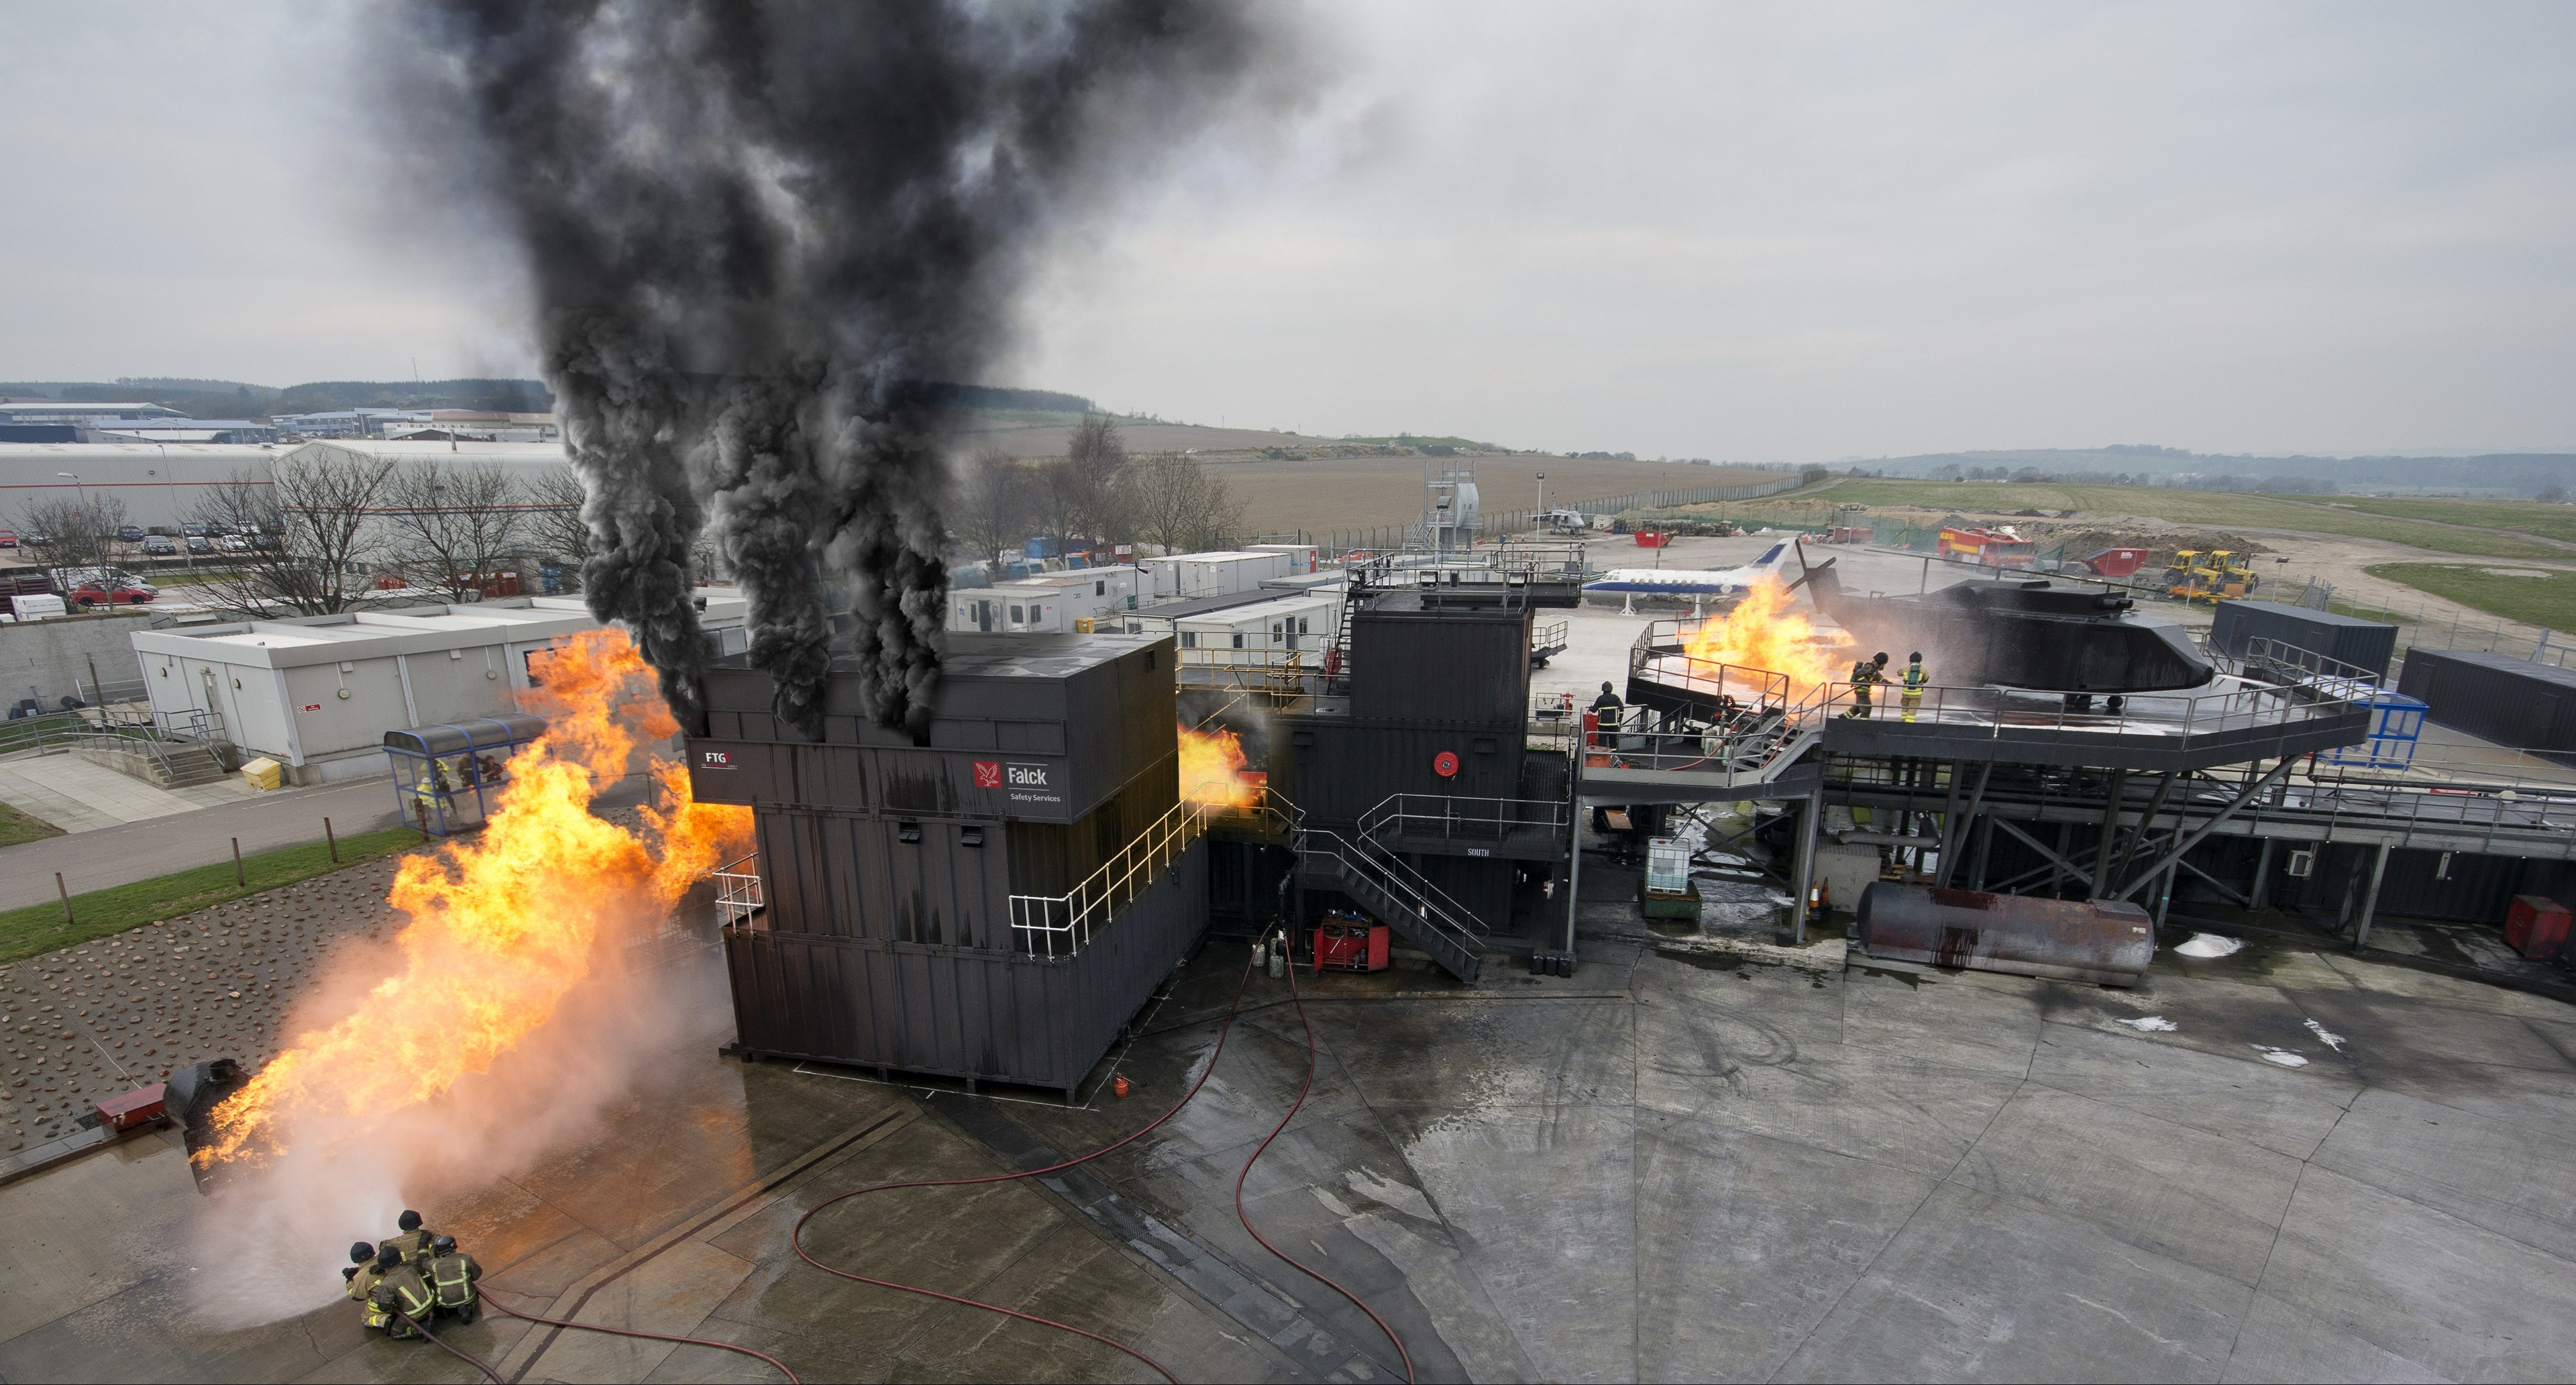 Falck Safety Services are giving the chance to prepare for real-life emergencies